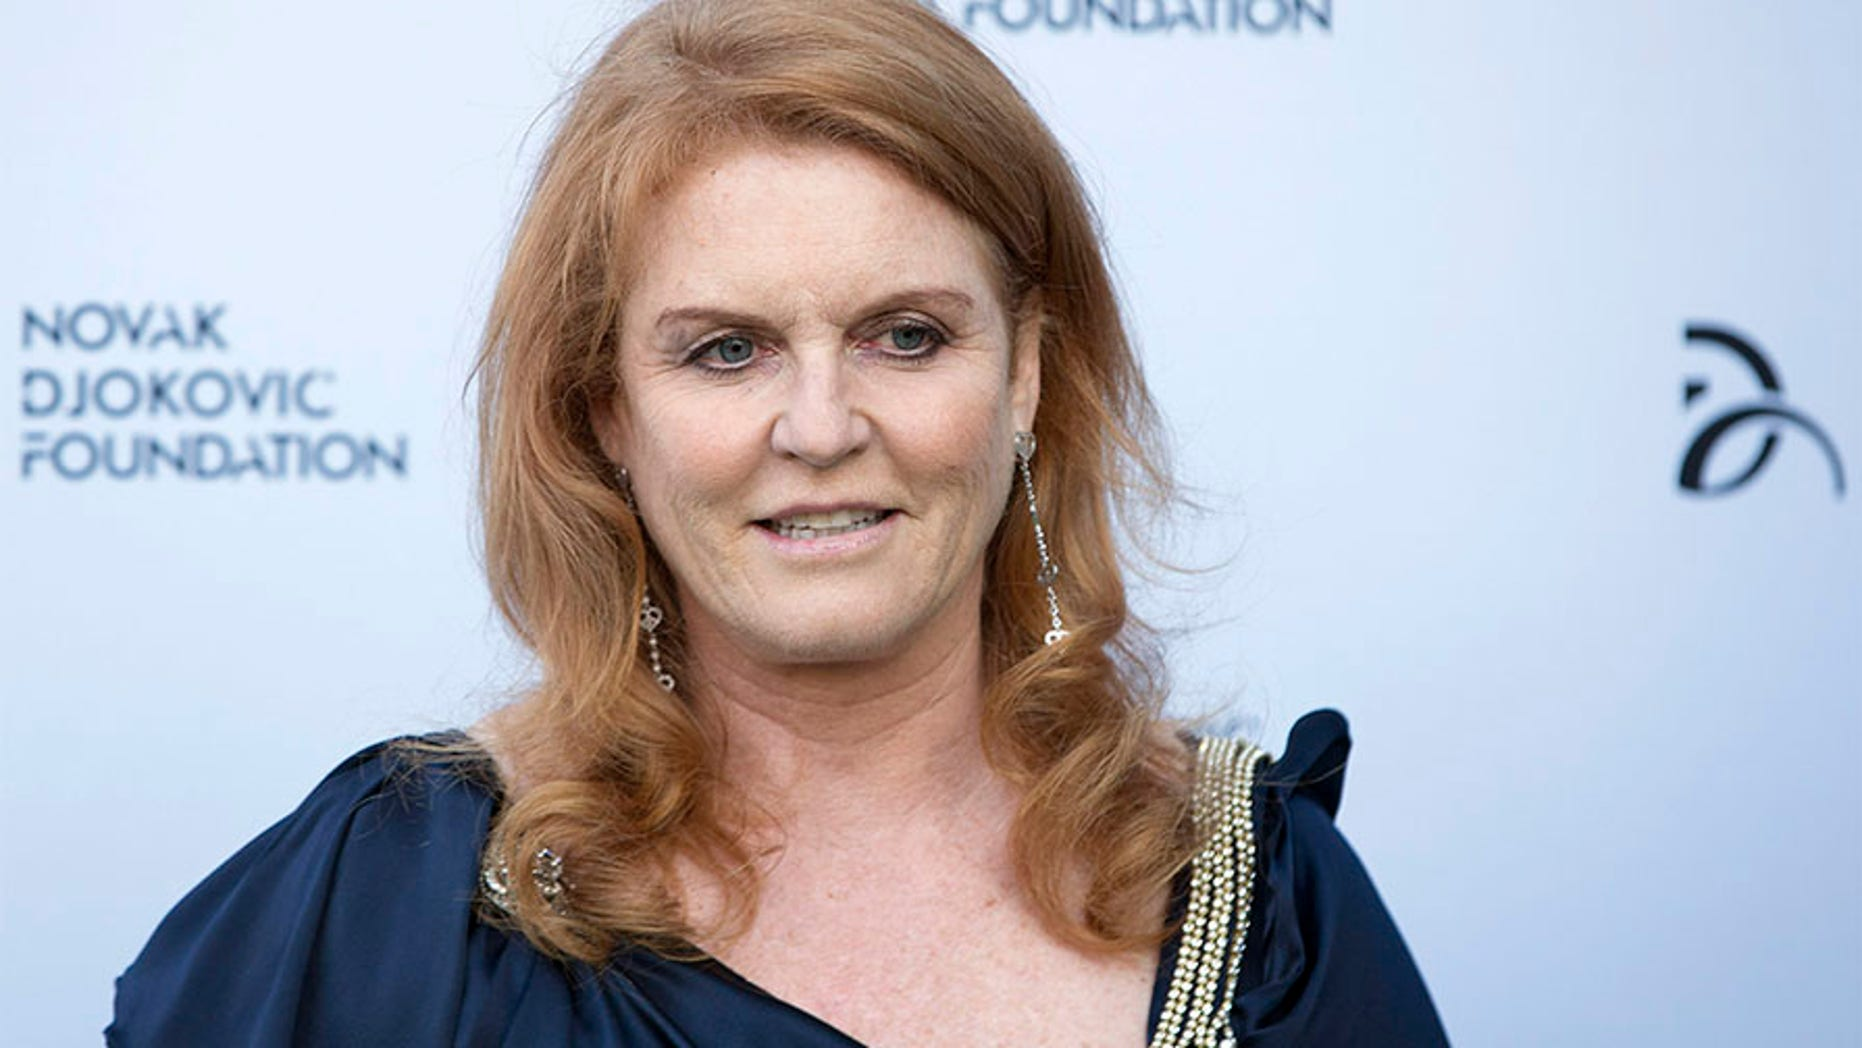 Britain's Sarah Ferguson, the Duchess of York, poses for photographers as she arrives at a fundraising dinner for the Novak Djokovic Foundation in London July 8, 2013.   REUTERS/Neil Hall   (BRITAIN - Tags: SPORT TENNIS ENTERTAINMENT SOCIETY PROFILE HEADSHOT ROYALS) - GM1E9790CWB01